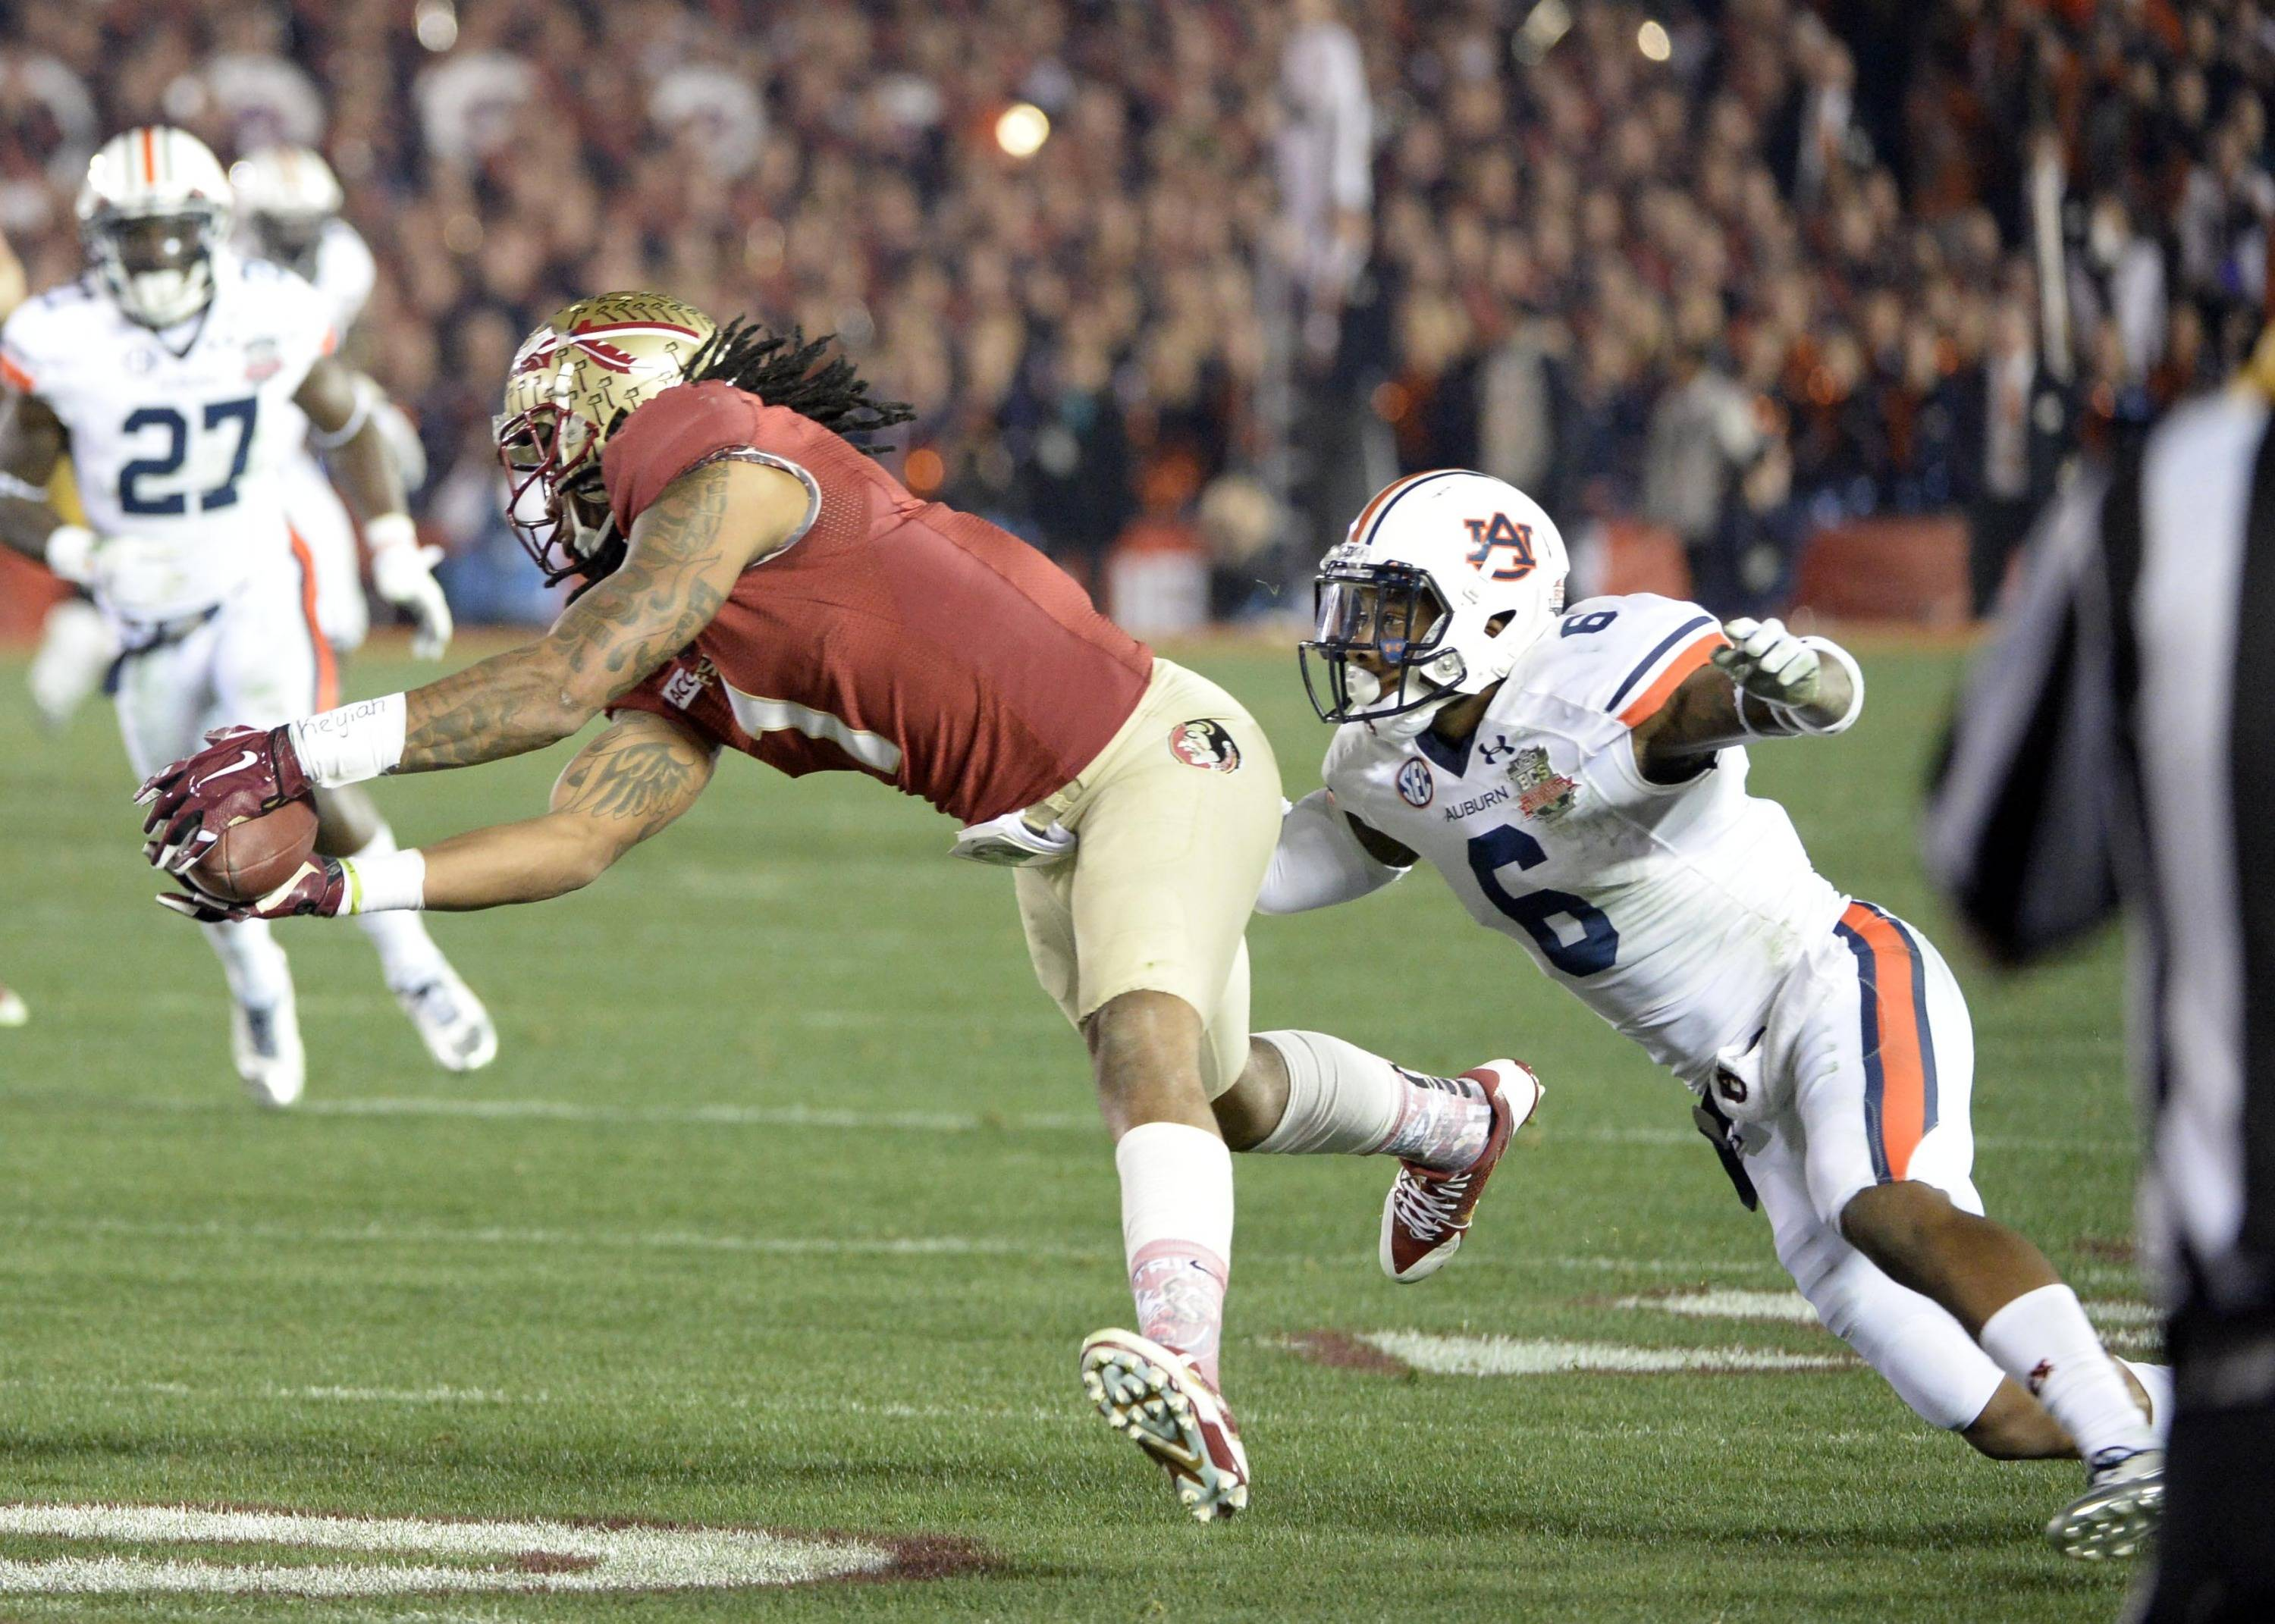 Jan 6, 2014; Pasadena, CA, USA; Florida State Seminoles wide receiver Kelvin Benjamin (1) makes a catch under pressure from Auburn Tigers defensive back Jonathon Mincy (6) during the second half of the 2014 BCS National Championship game at the Rose Bowl.  Mandatory Credit: Richard Mackson-USA TODAY Sports